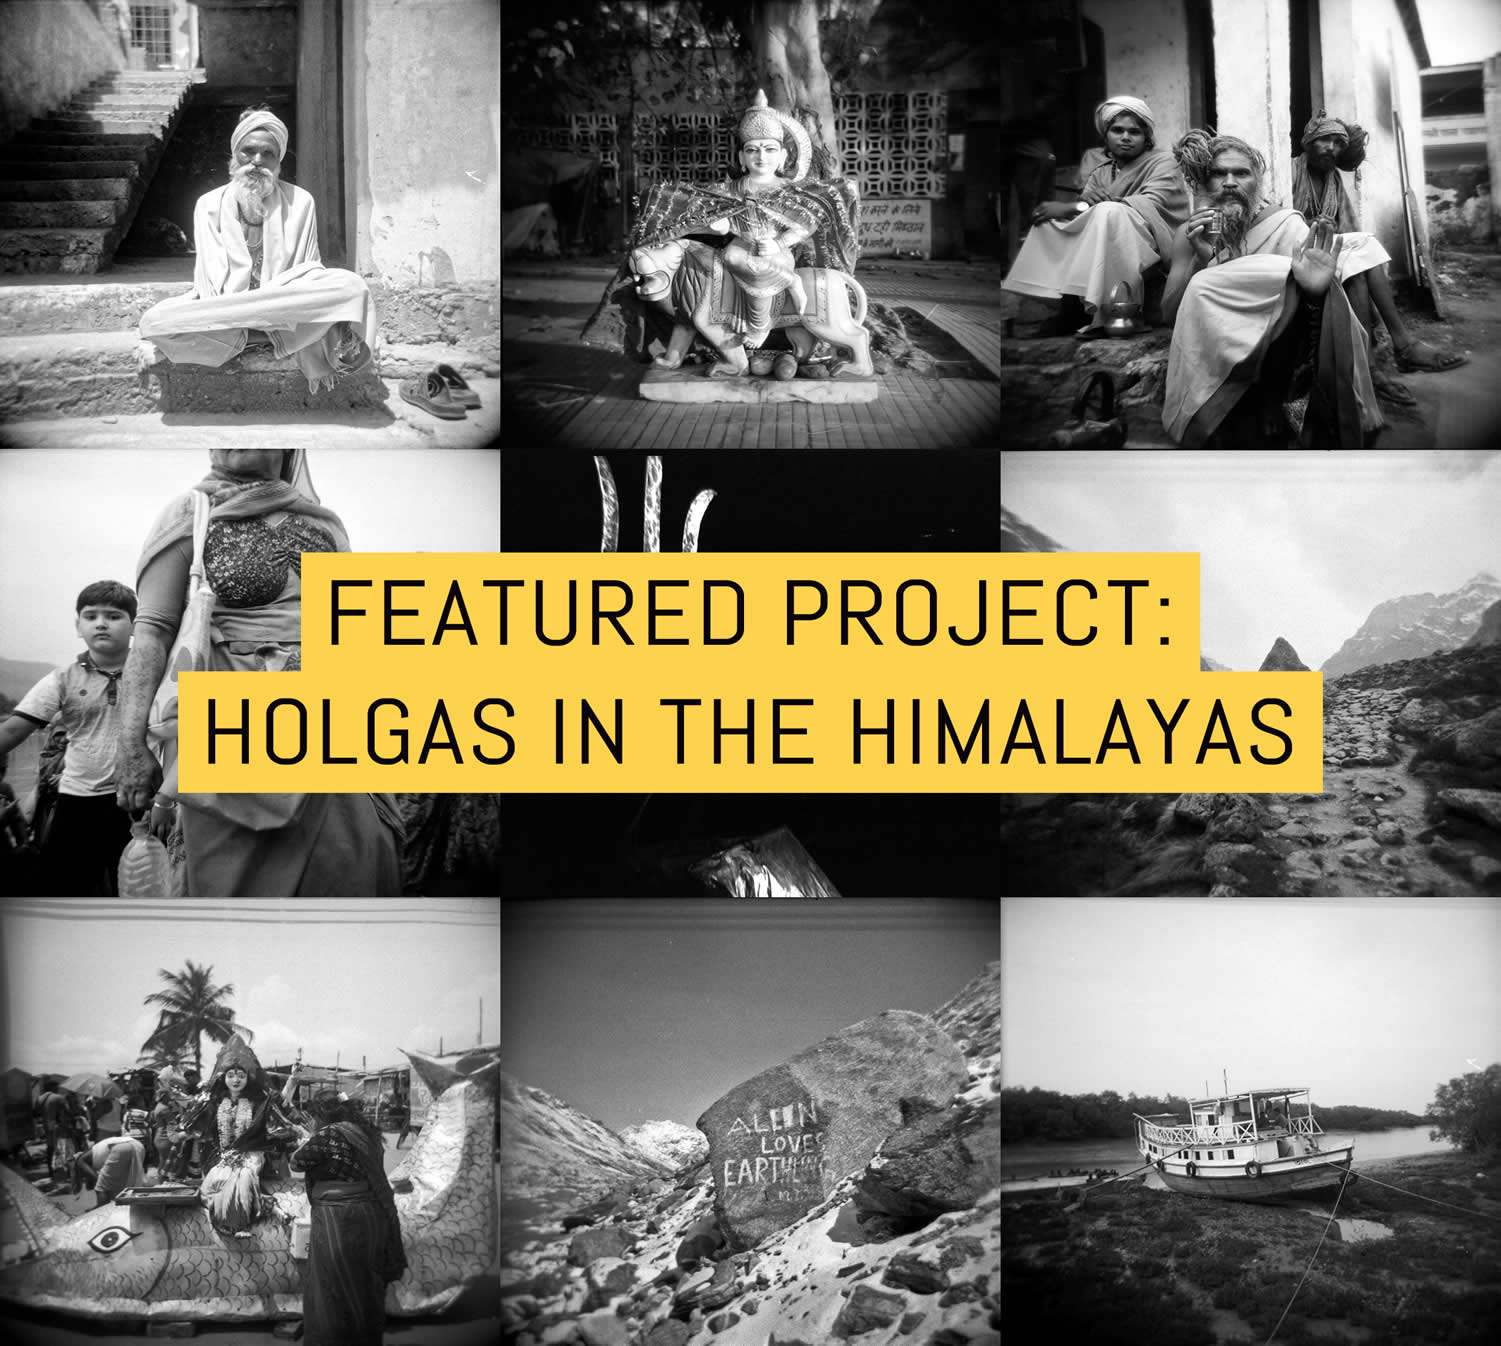 Cover - Featured project - Sacred Hydrology aka Holgas in the Himalayas - by Andrew Tonn